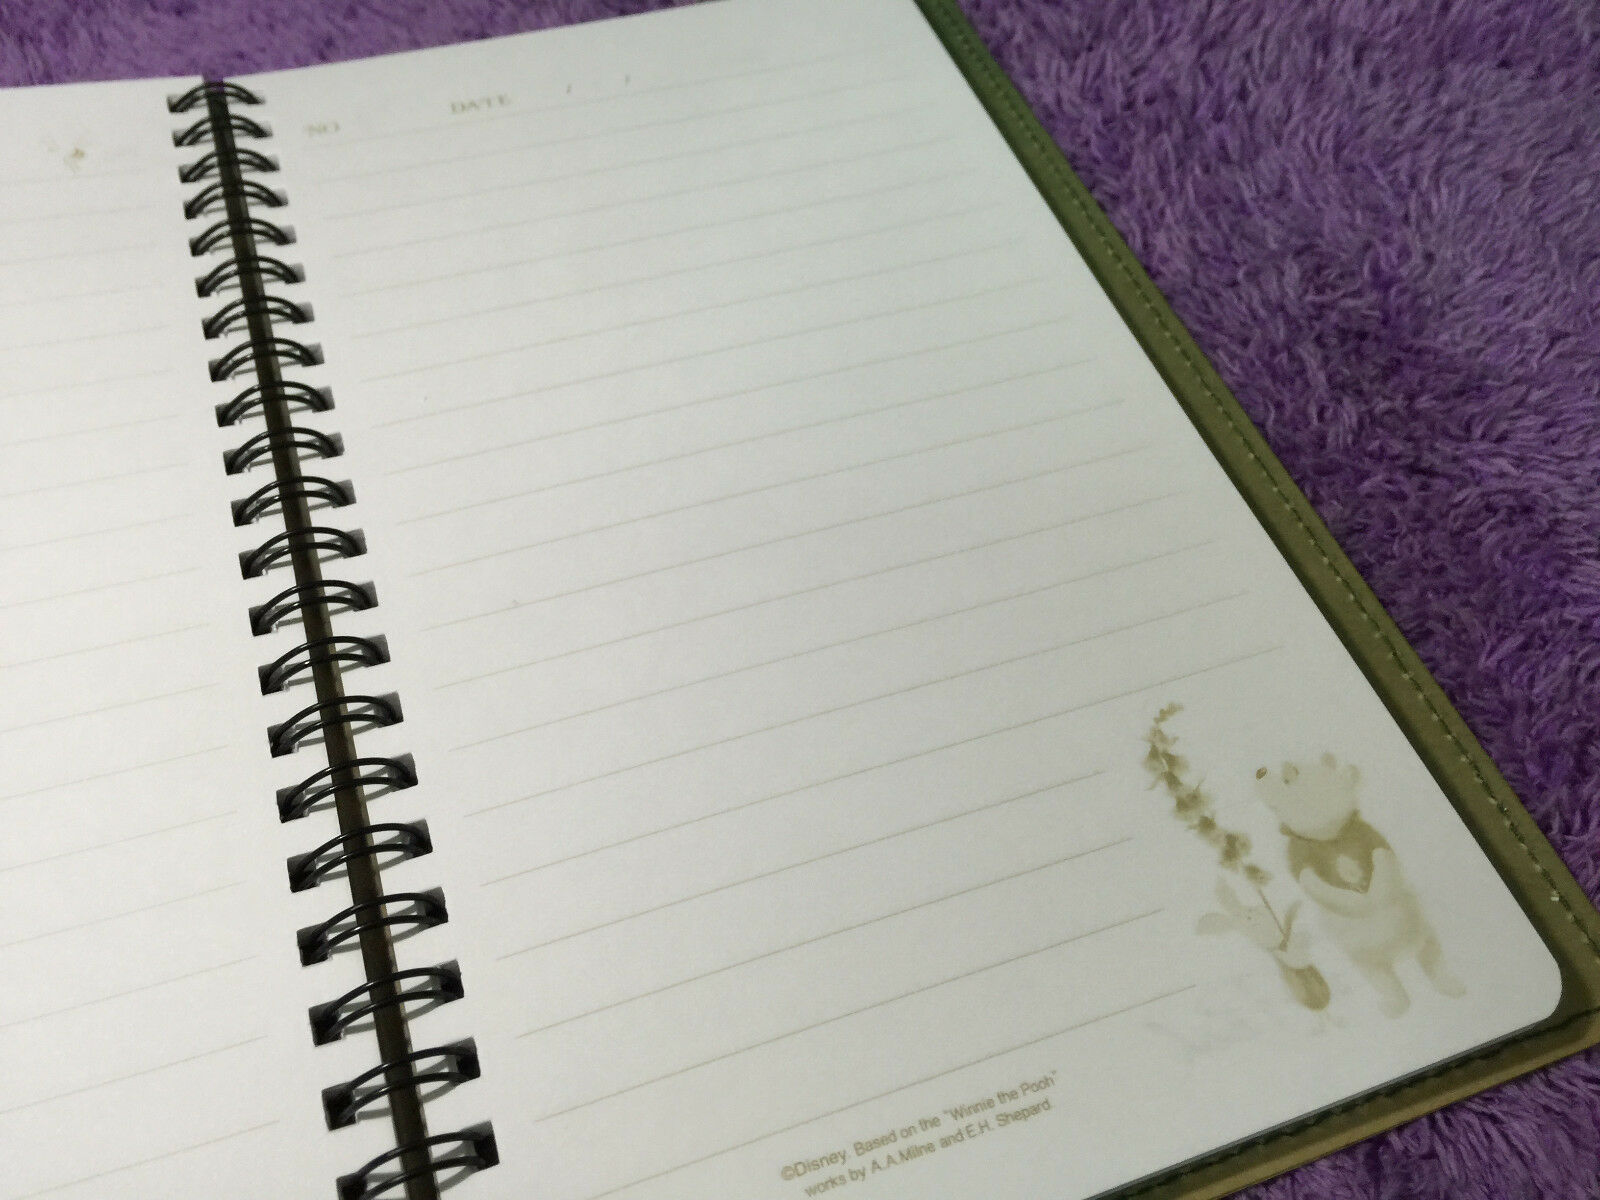 Cute Winnie The Pooh Bear Note Book Diary Journal Travel Memo Gift Nice Schedule